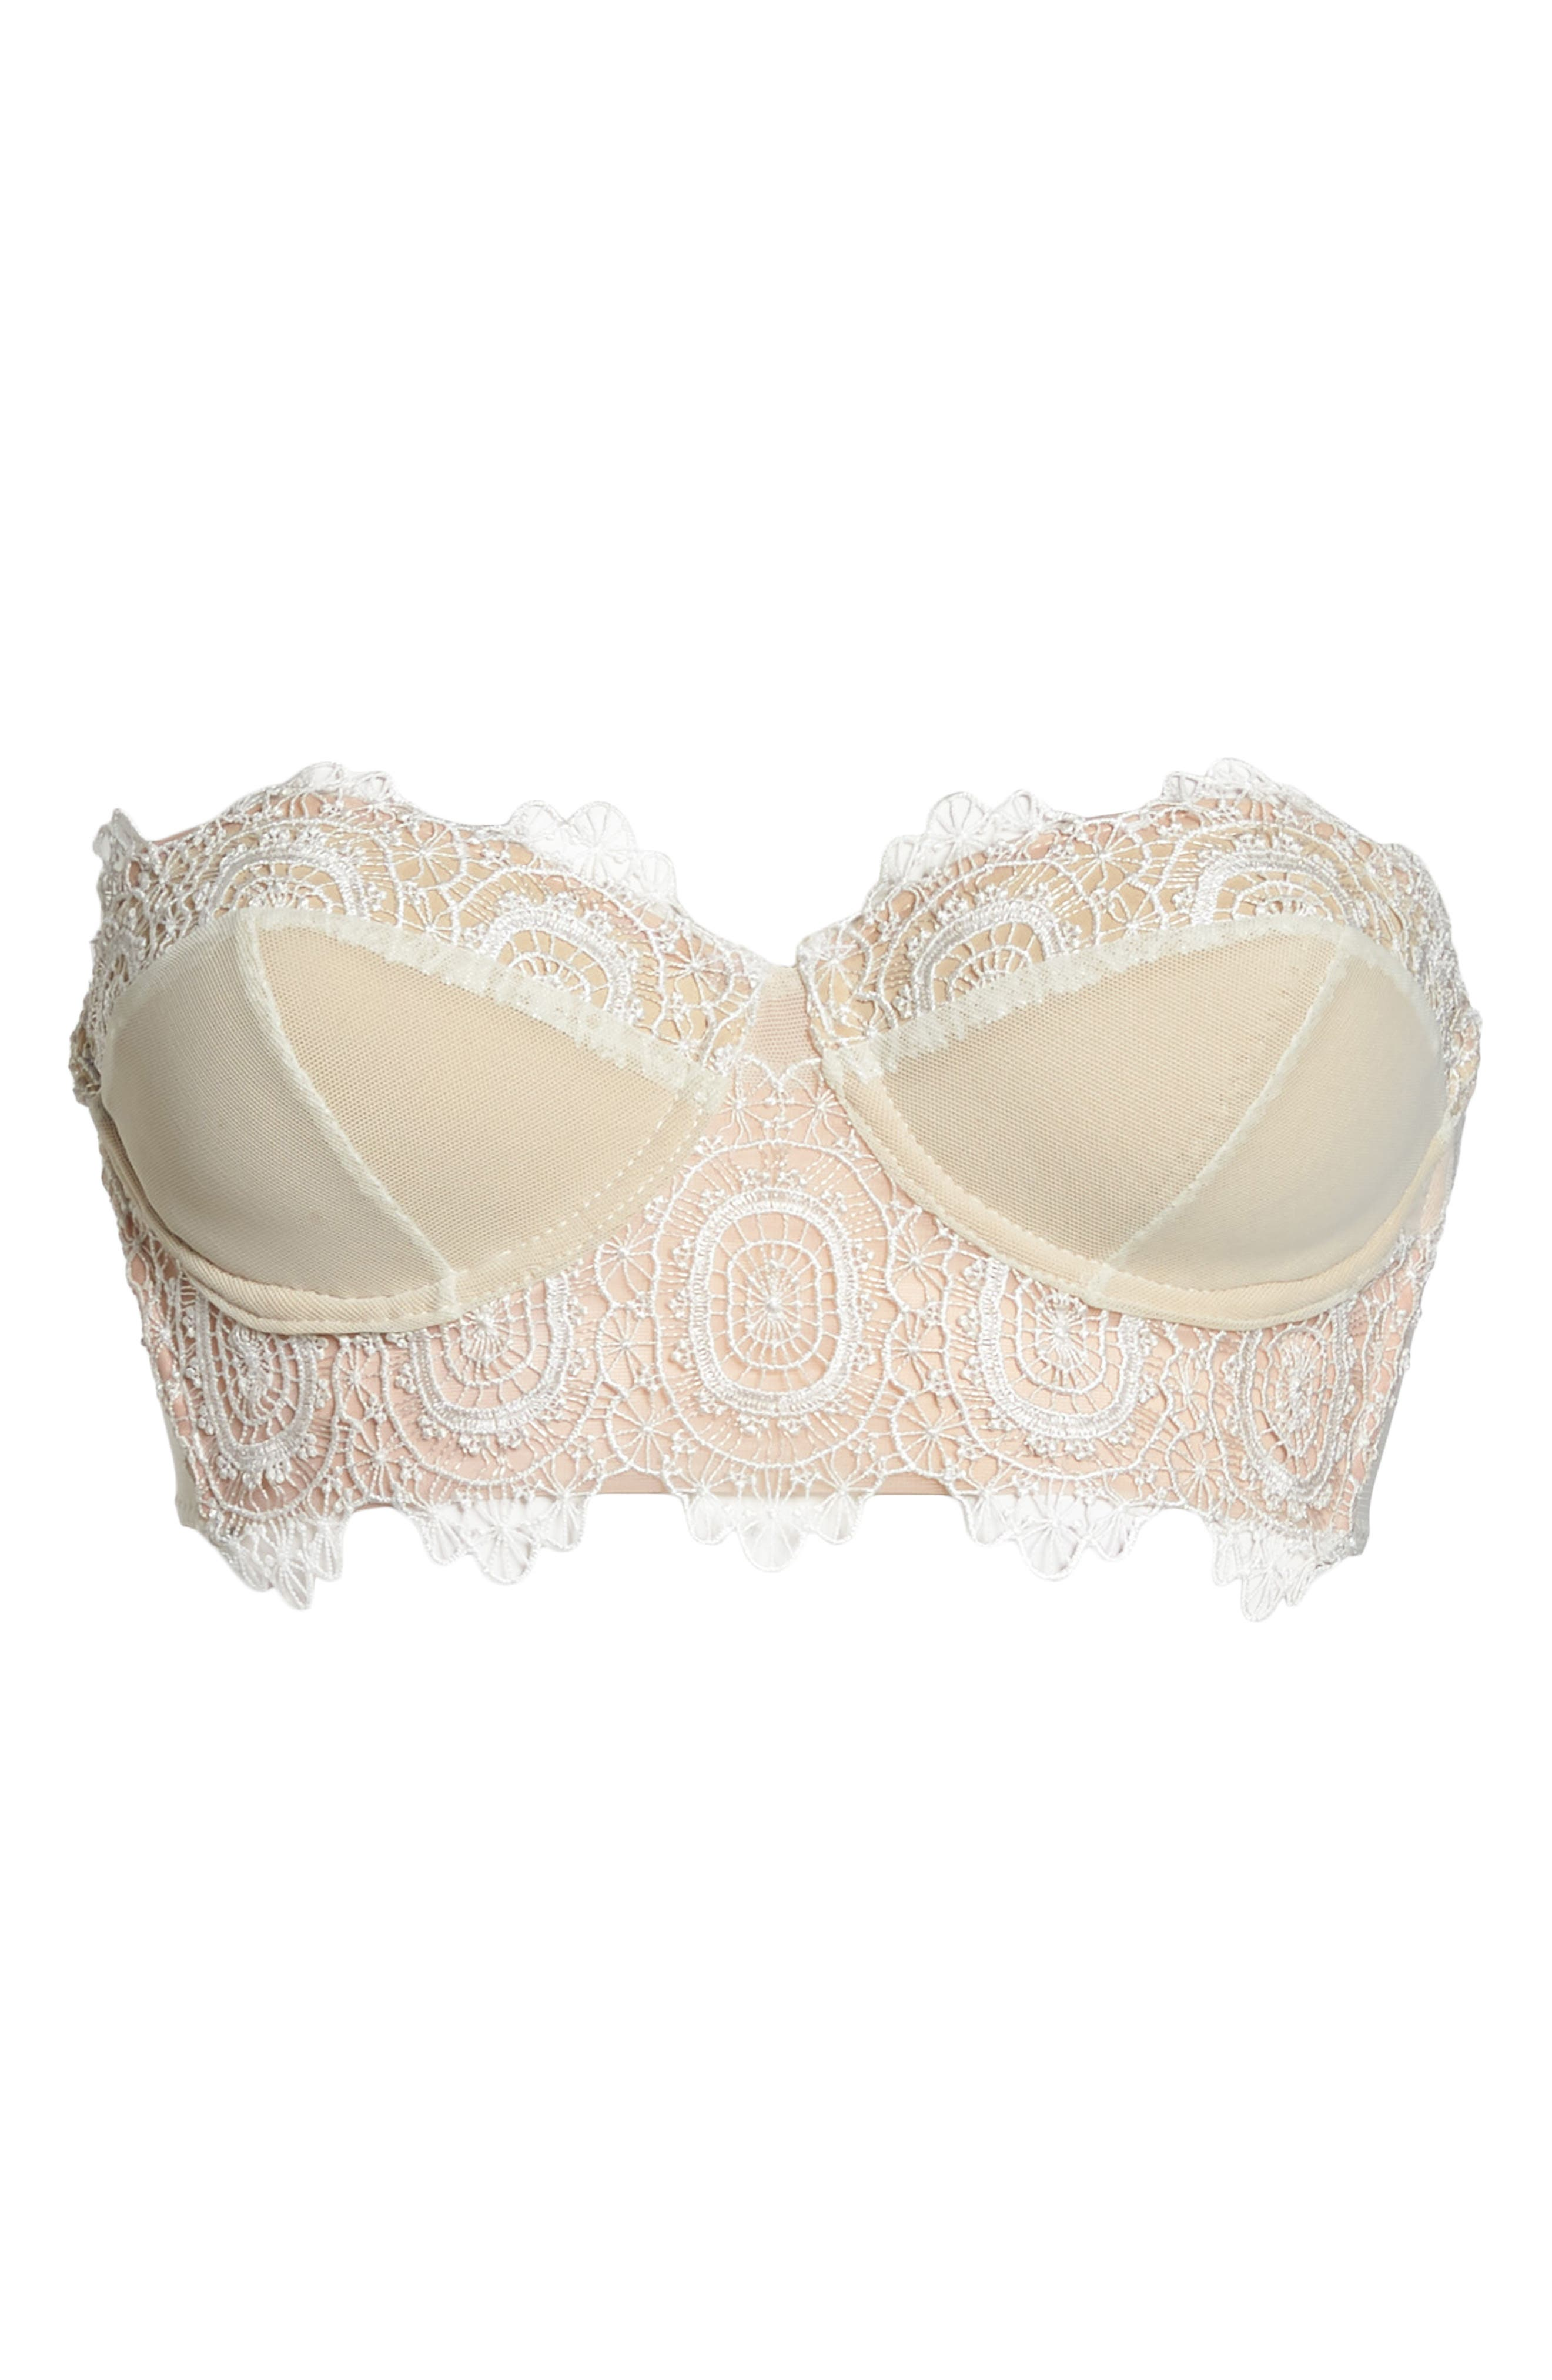 Thistle & Spire Willow Underwire Convertible Bustier Bra,                             Alternate thumbnail 10, color,                             Ivory